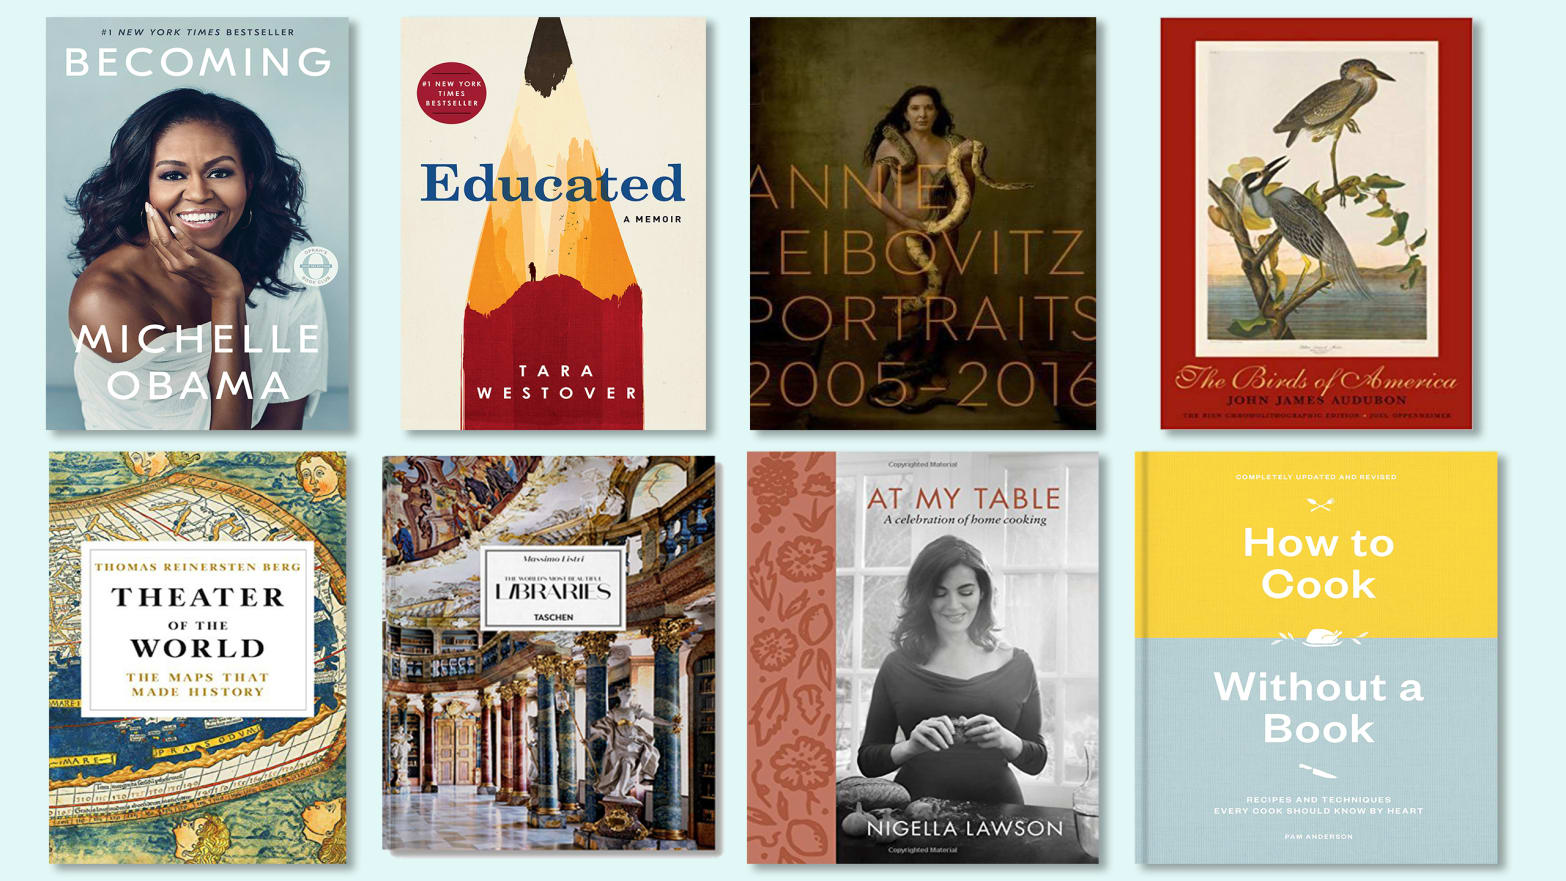 A Mother's Day Book Gift Guide with Memoirs, Cookbooks, Coffee Table Books, and More